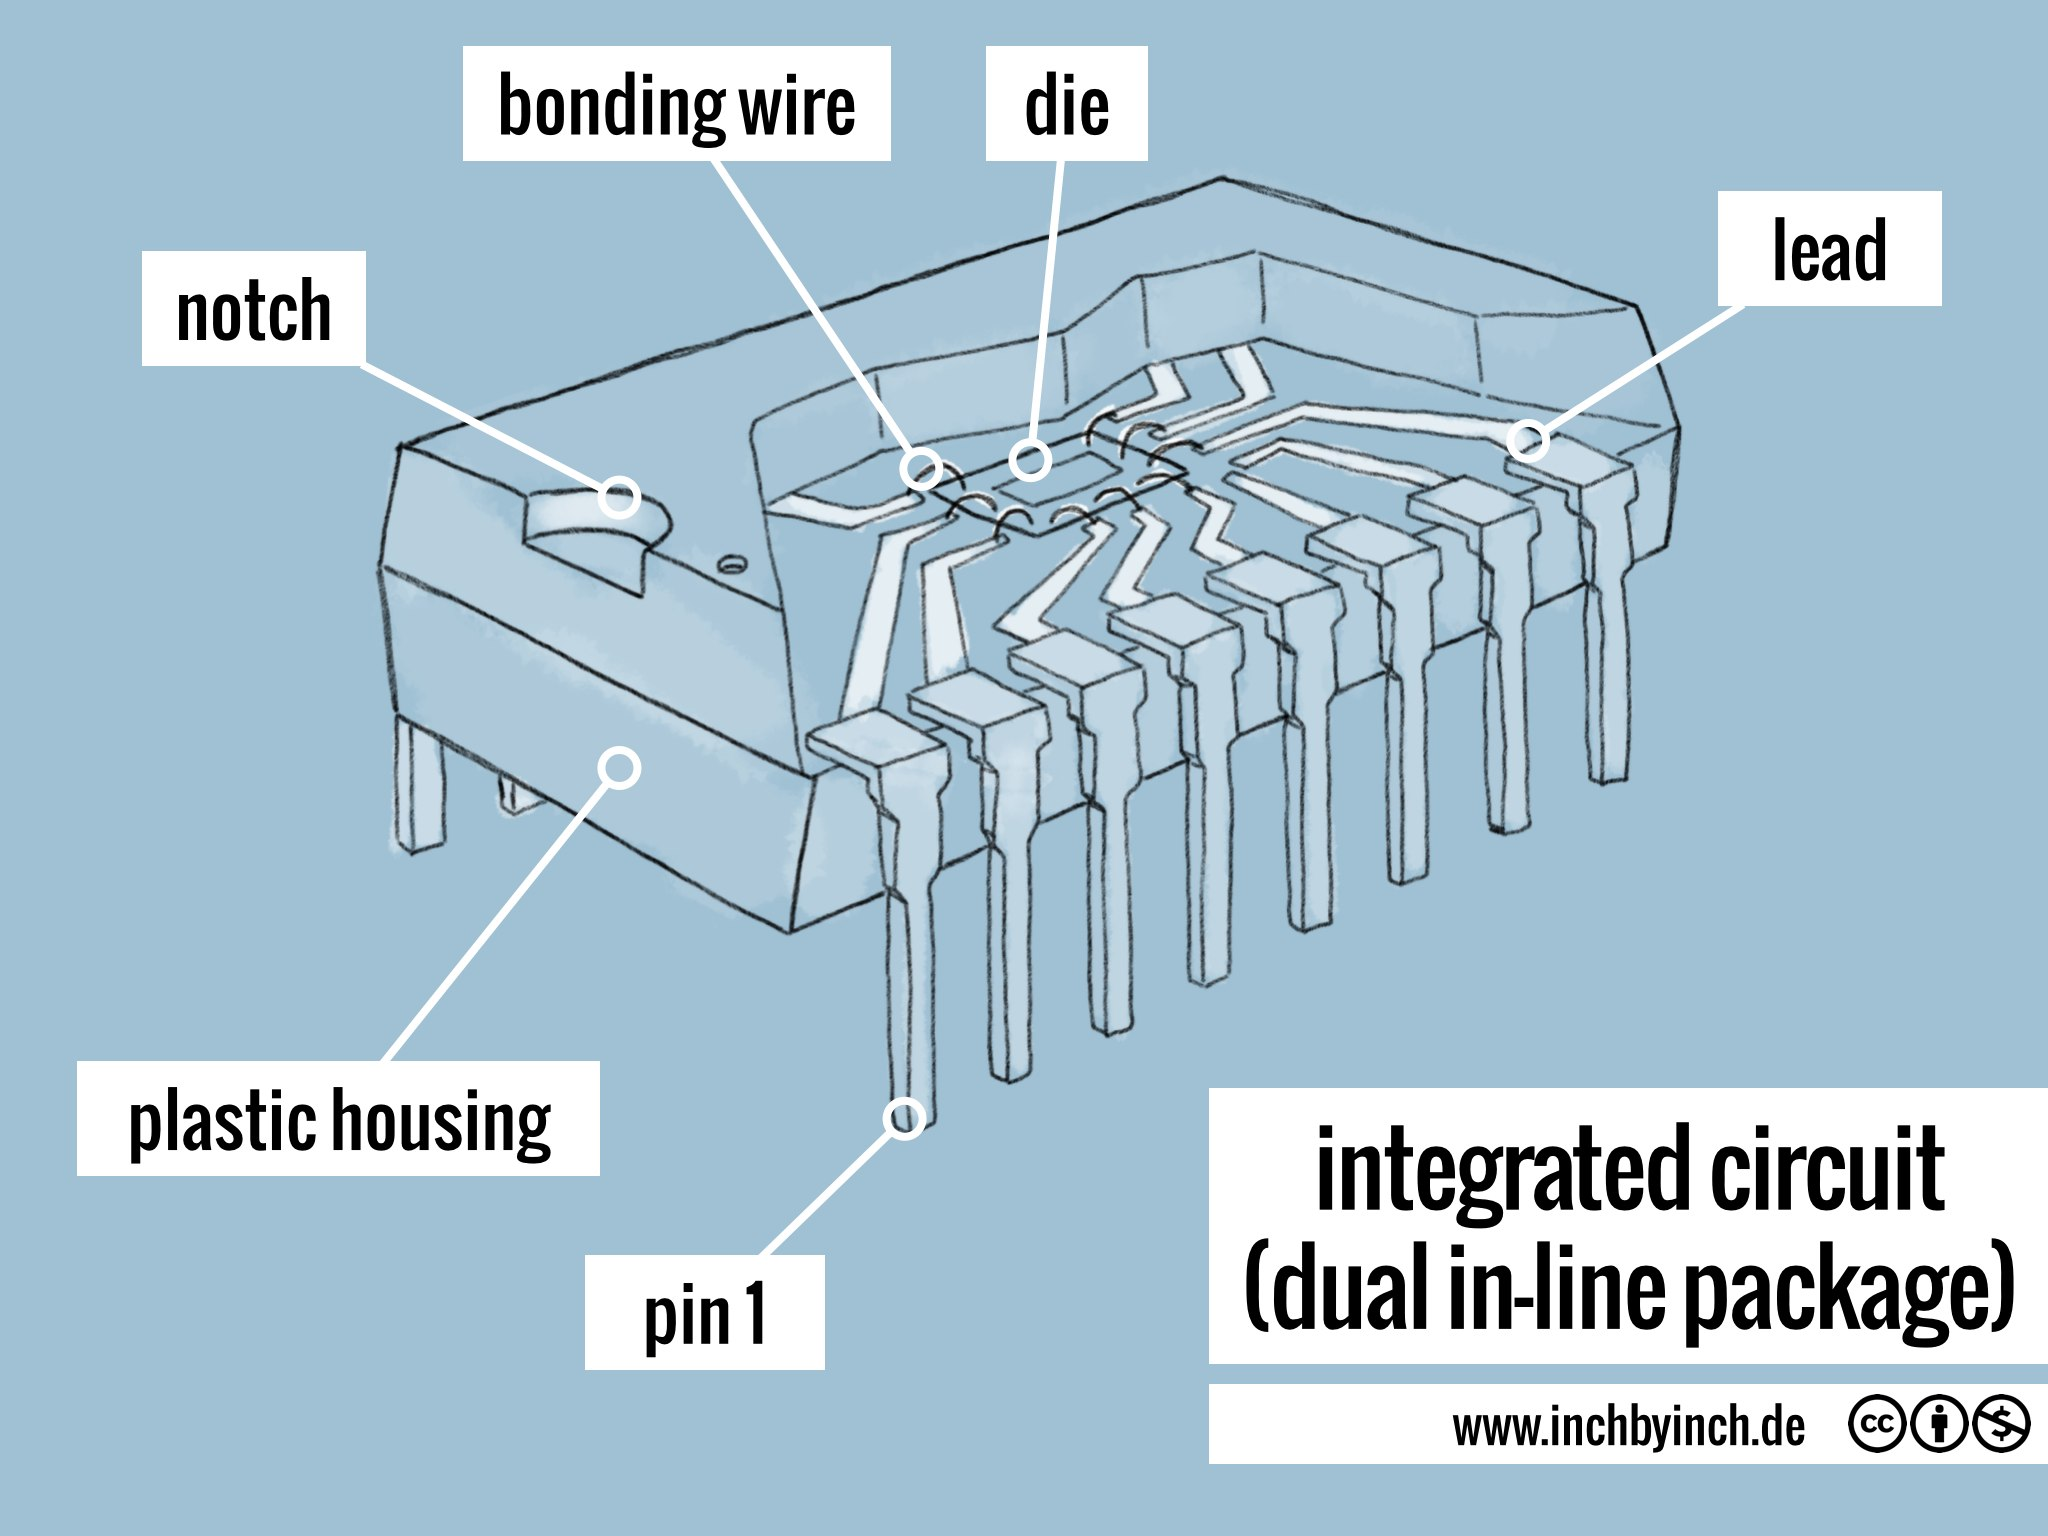 INCH - Technical English | integrated circuit